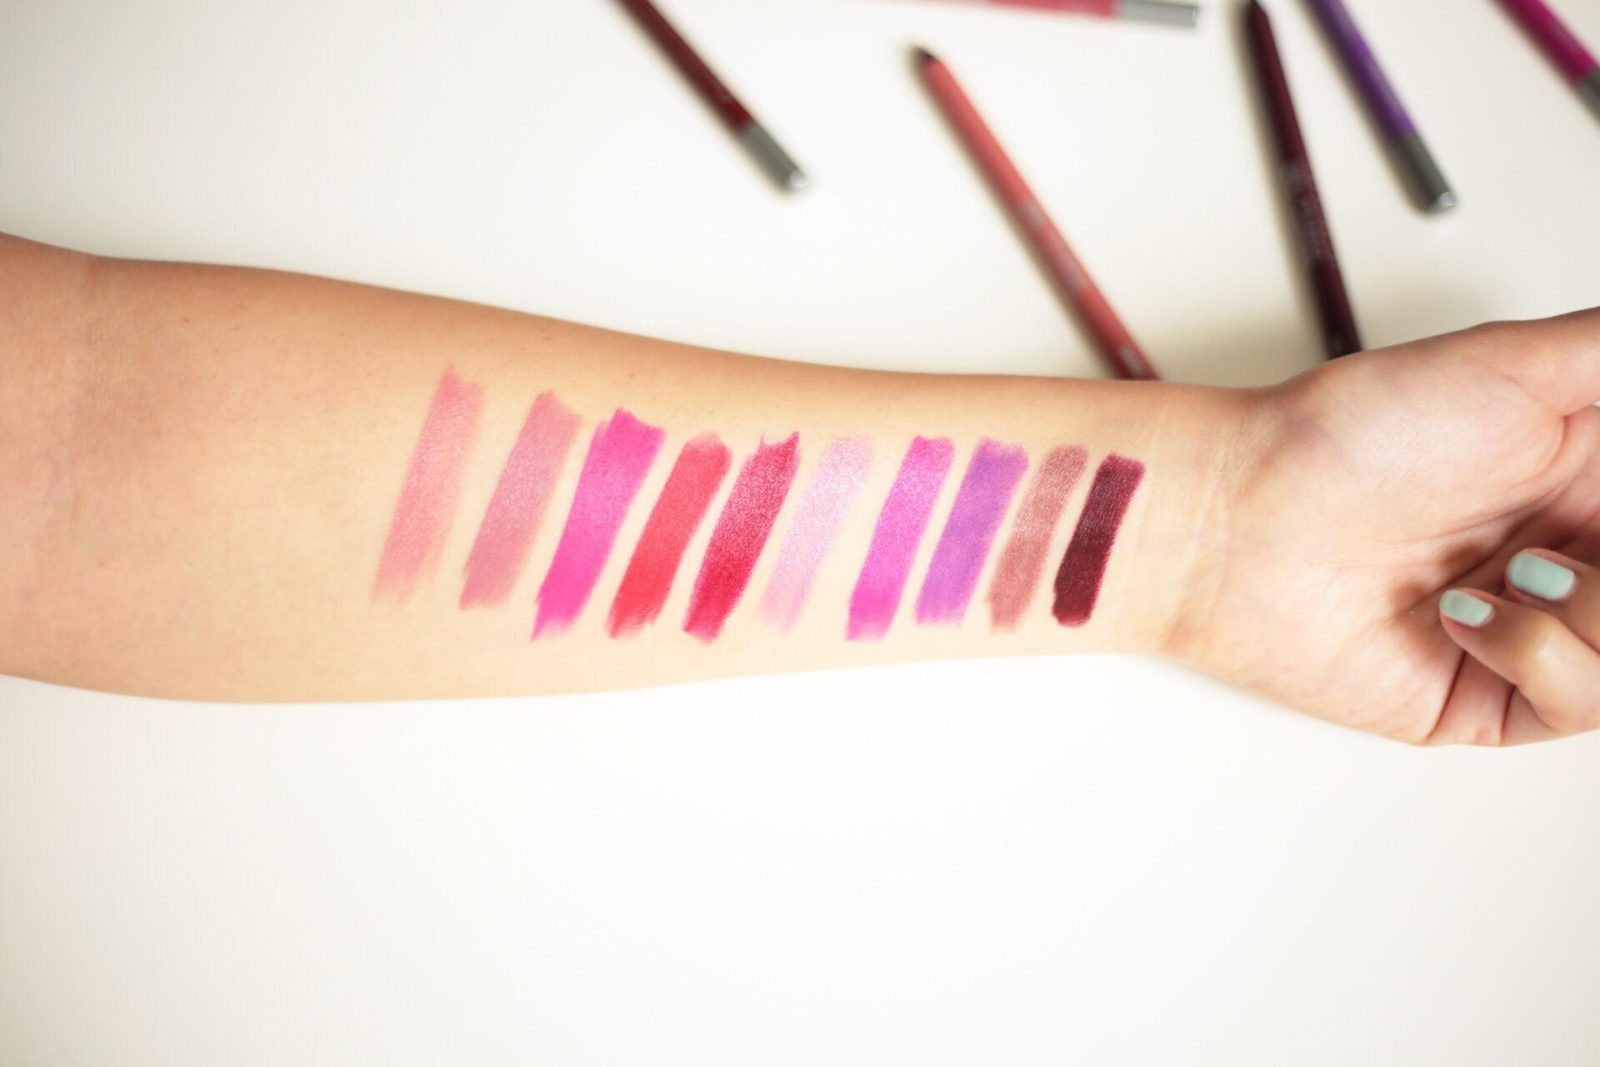 Urban-Decay-Vice-Lipstick-swatches